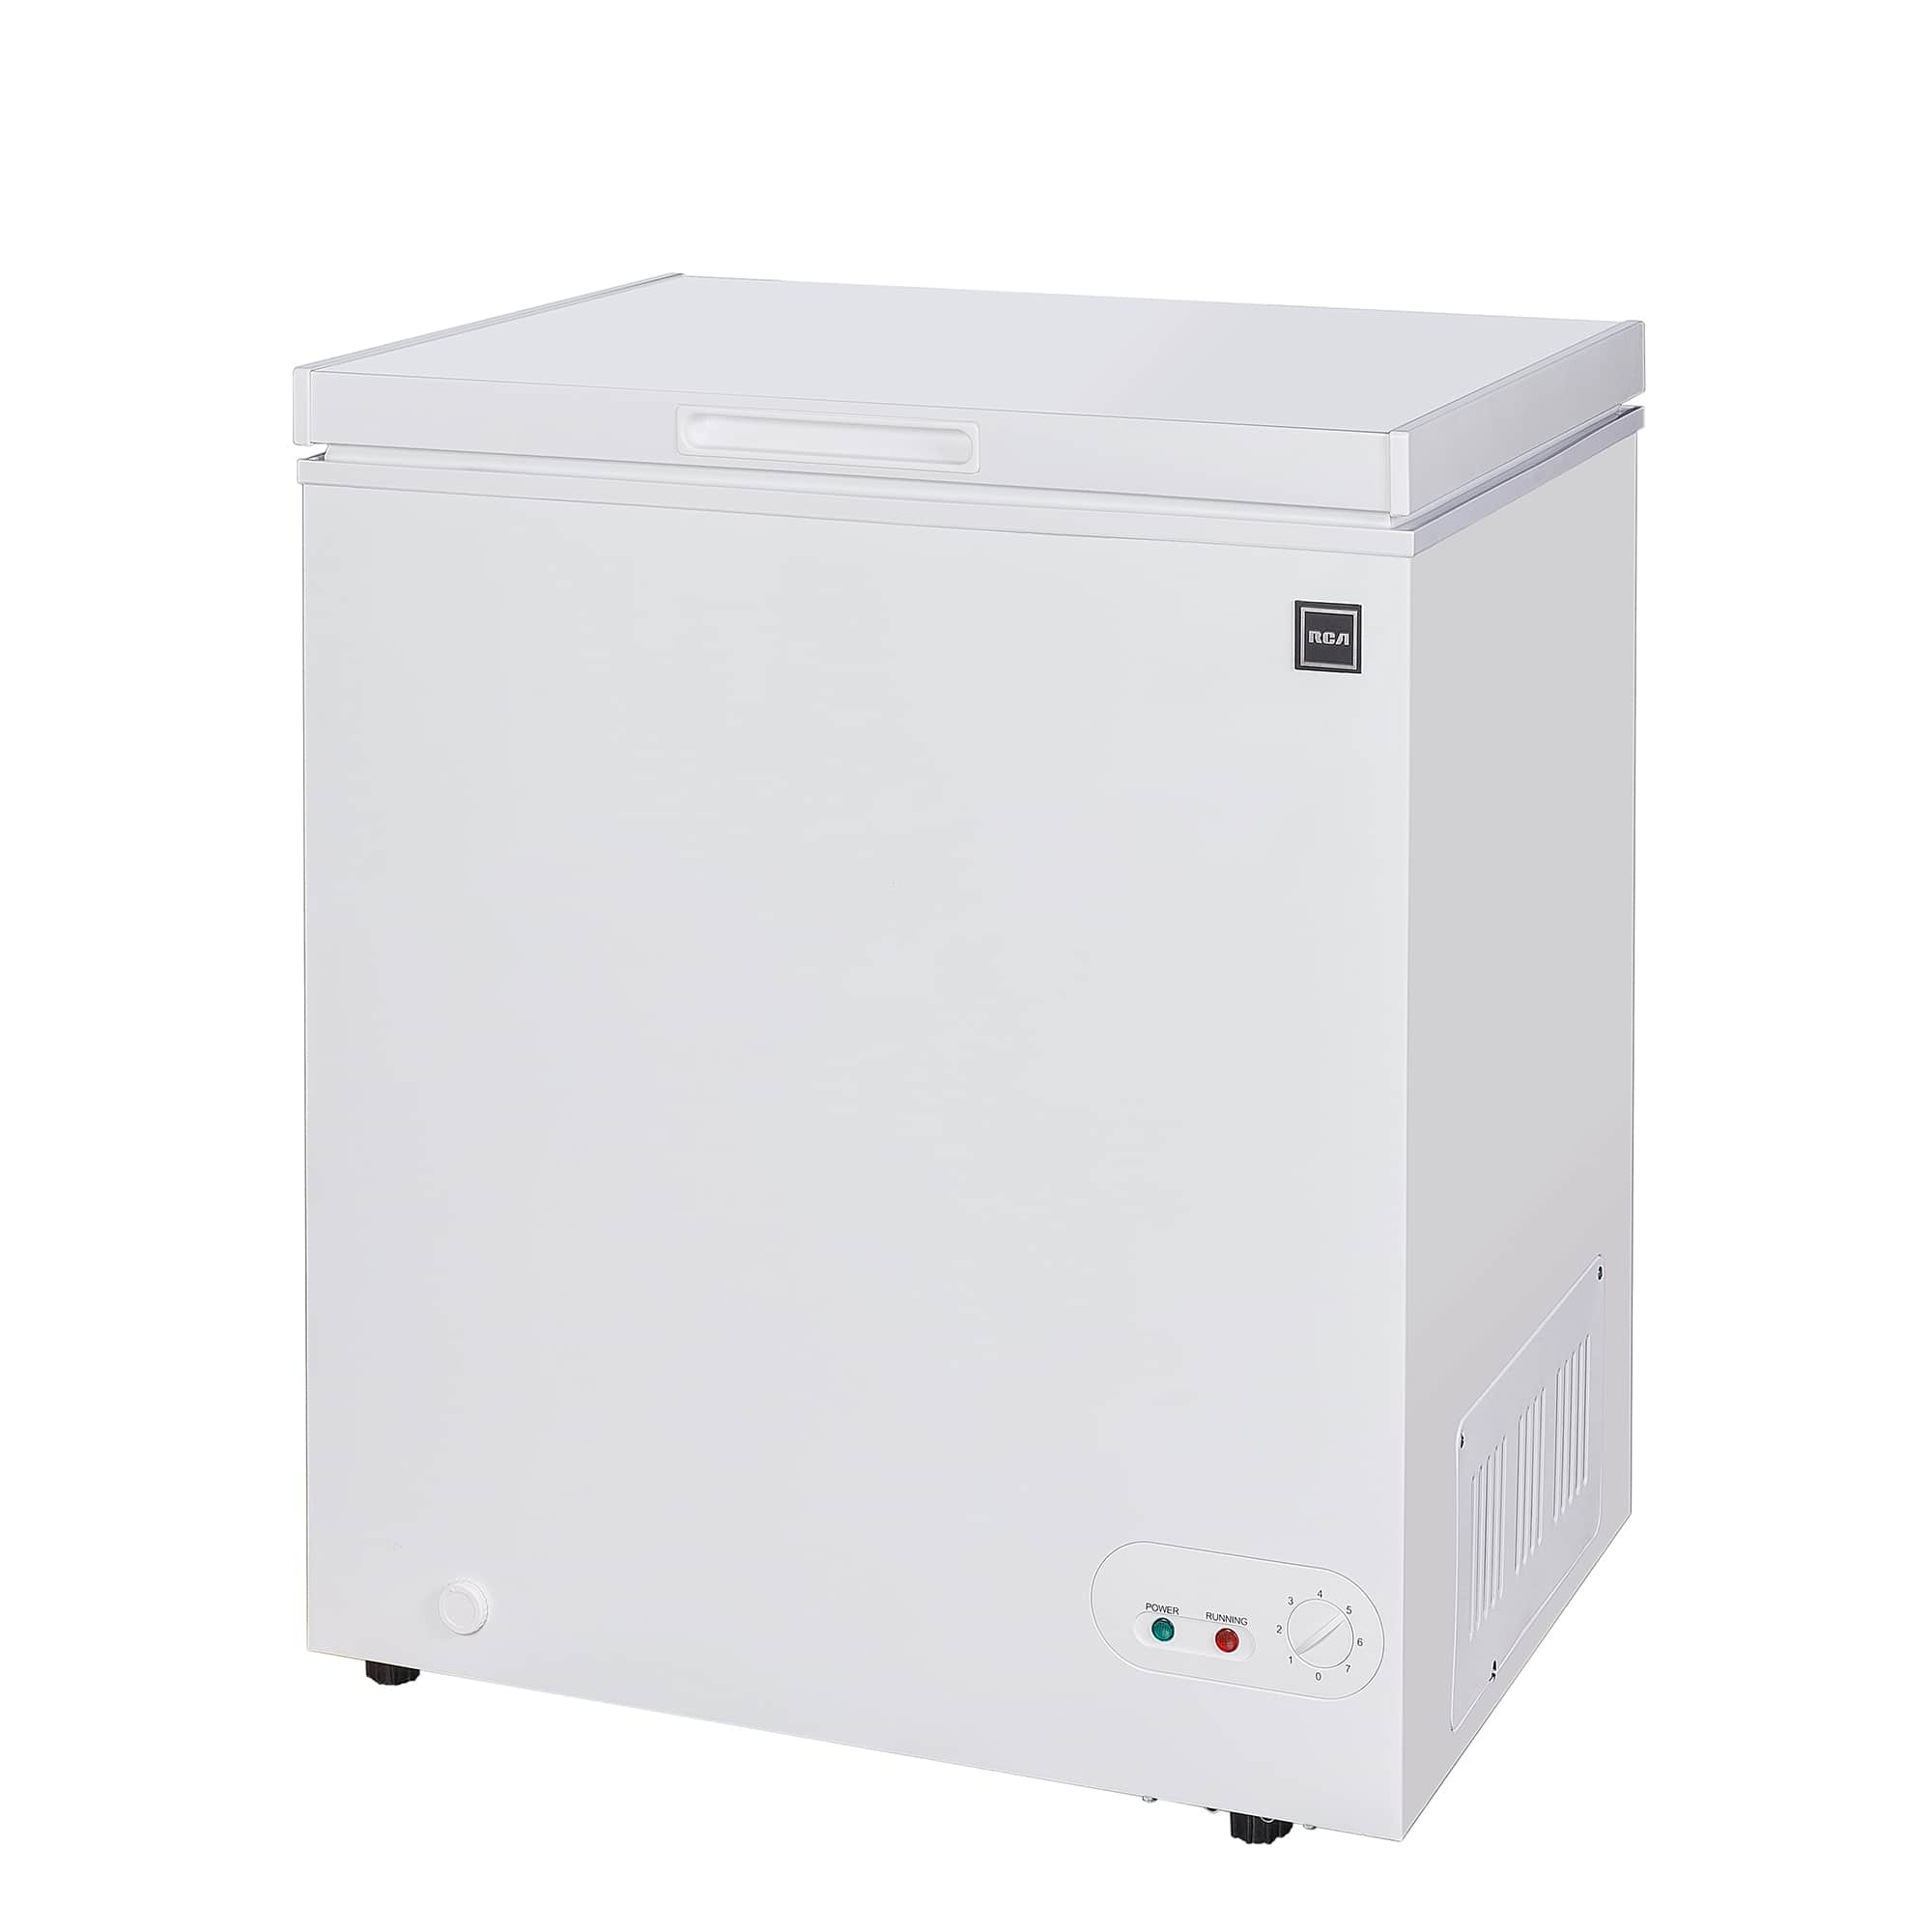 RCA 5.0 Cu. Ft. Chest Freezer RFRF452, White $169 free shipping (2 day) @ walmart